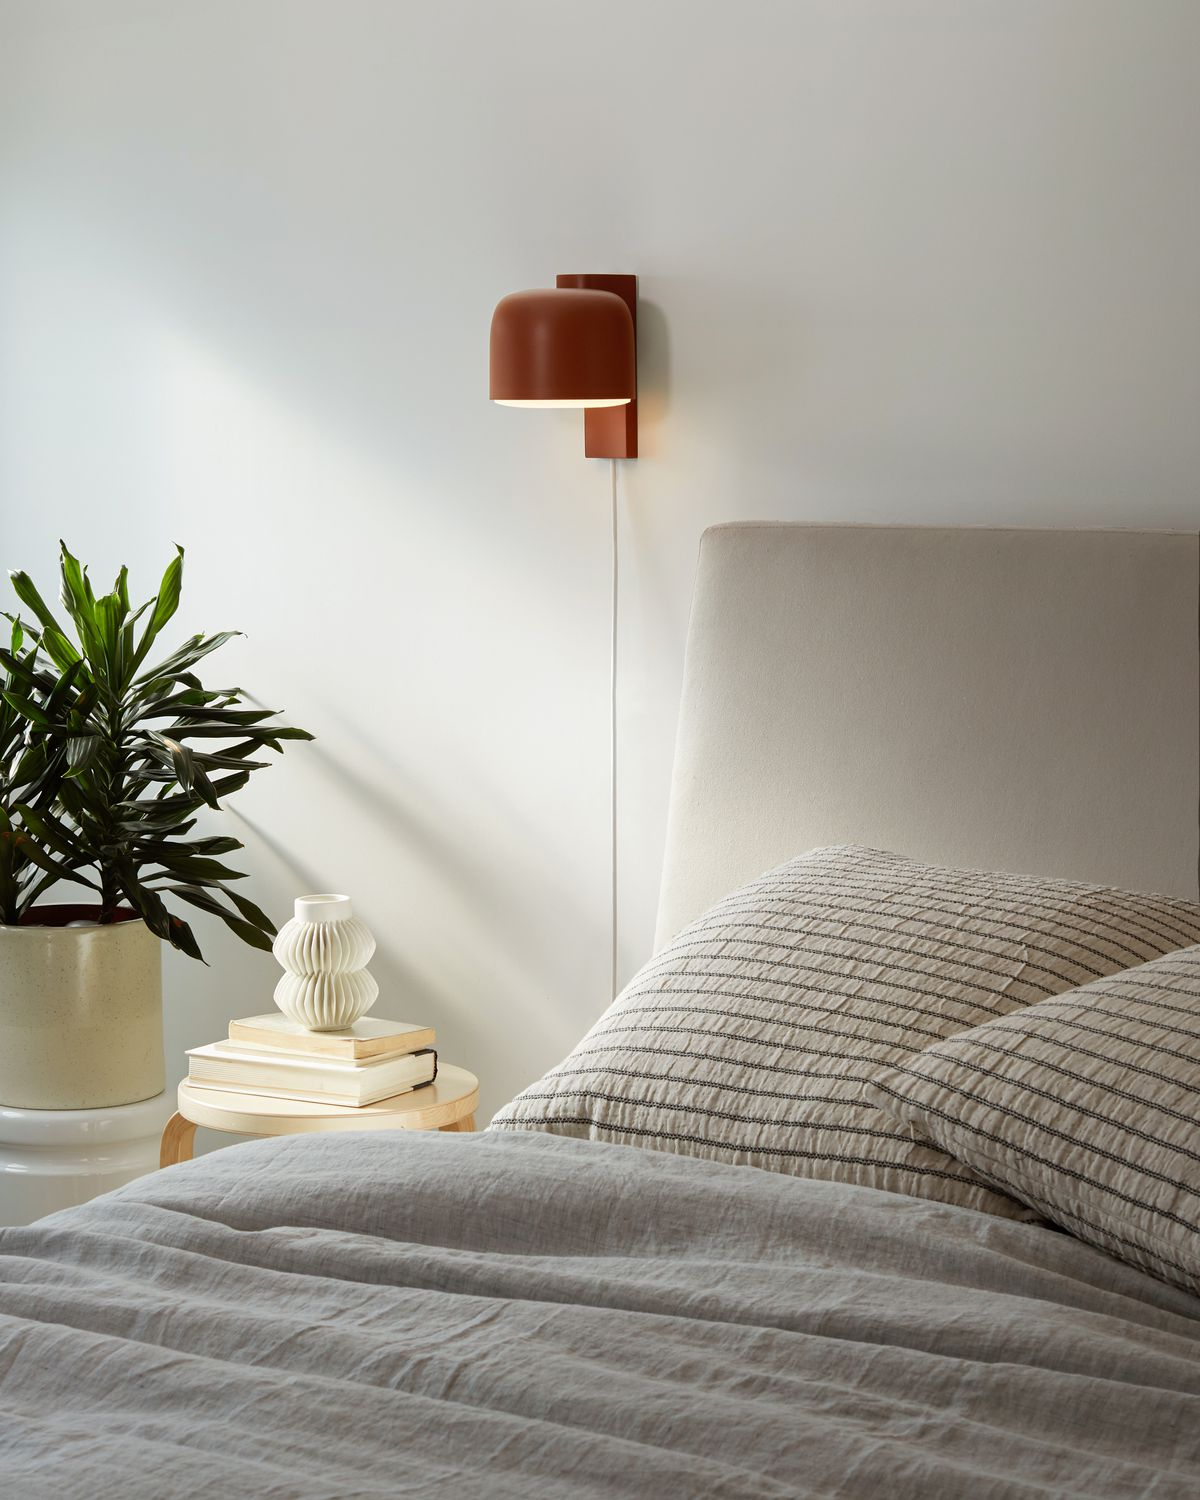 Red sconce next to bed.